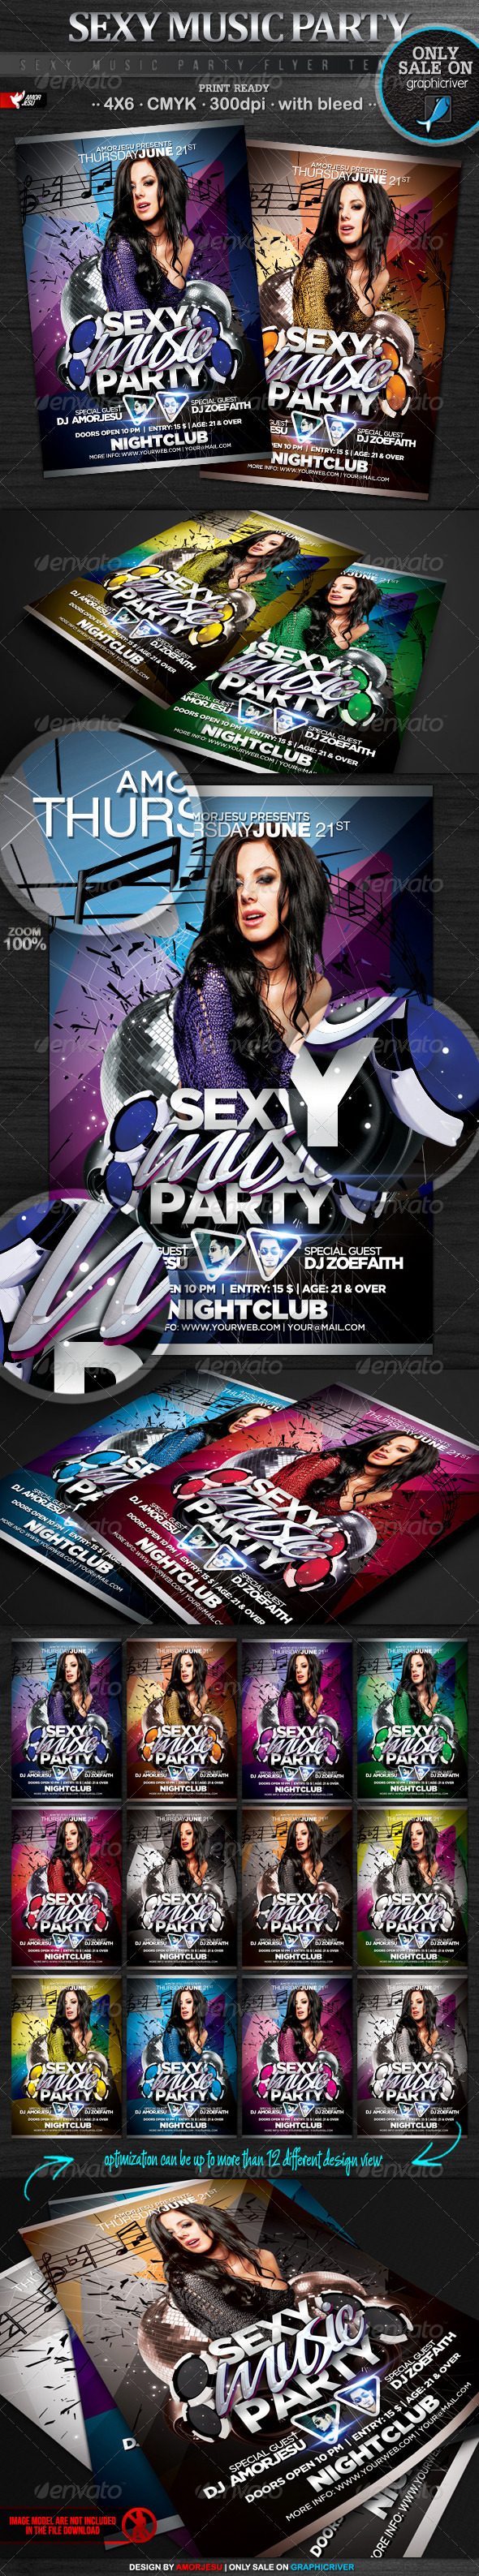 Sexy Music Party Flyer Template - Events Flyers